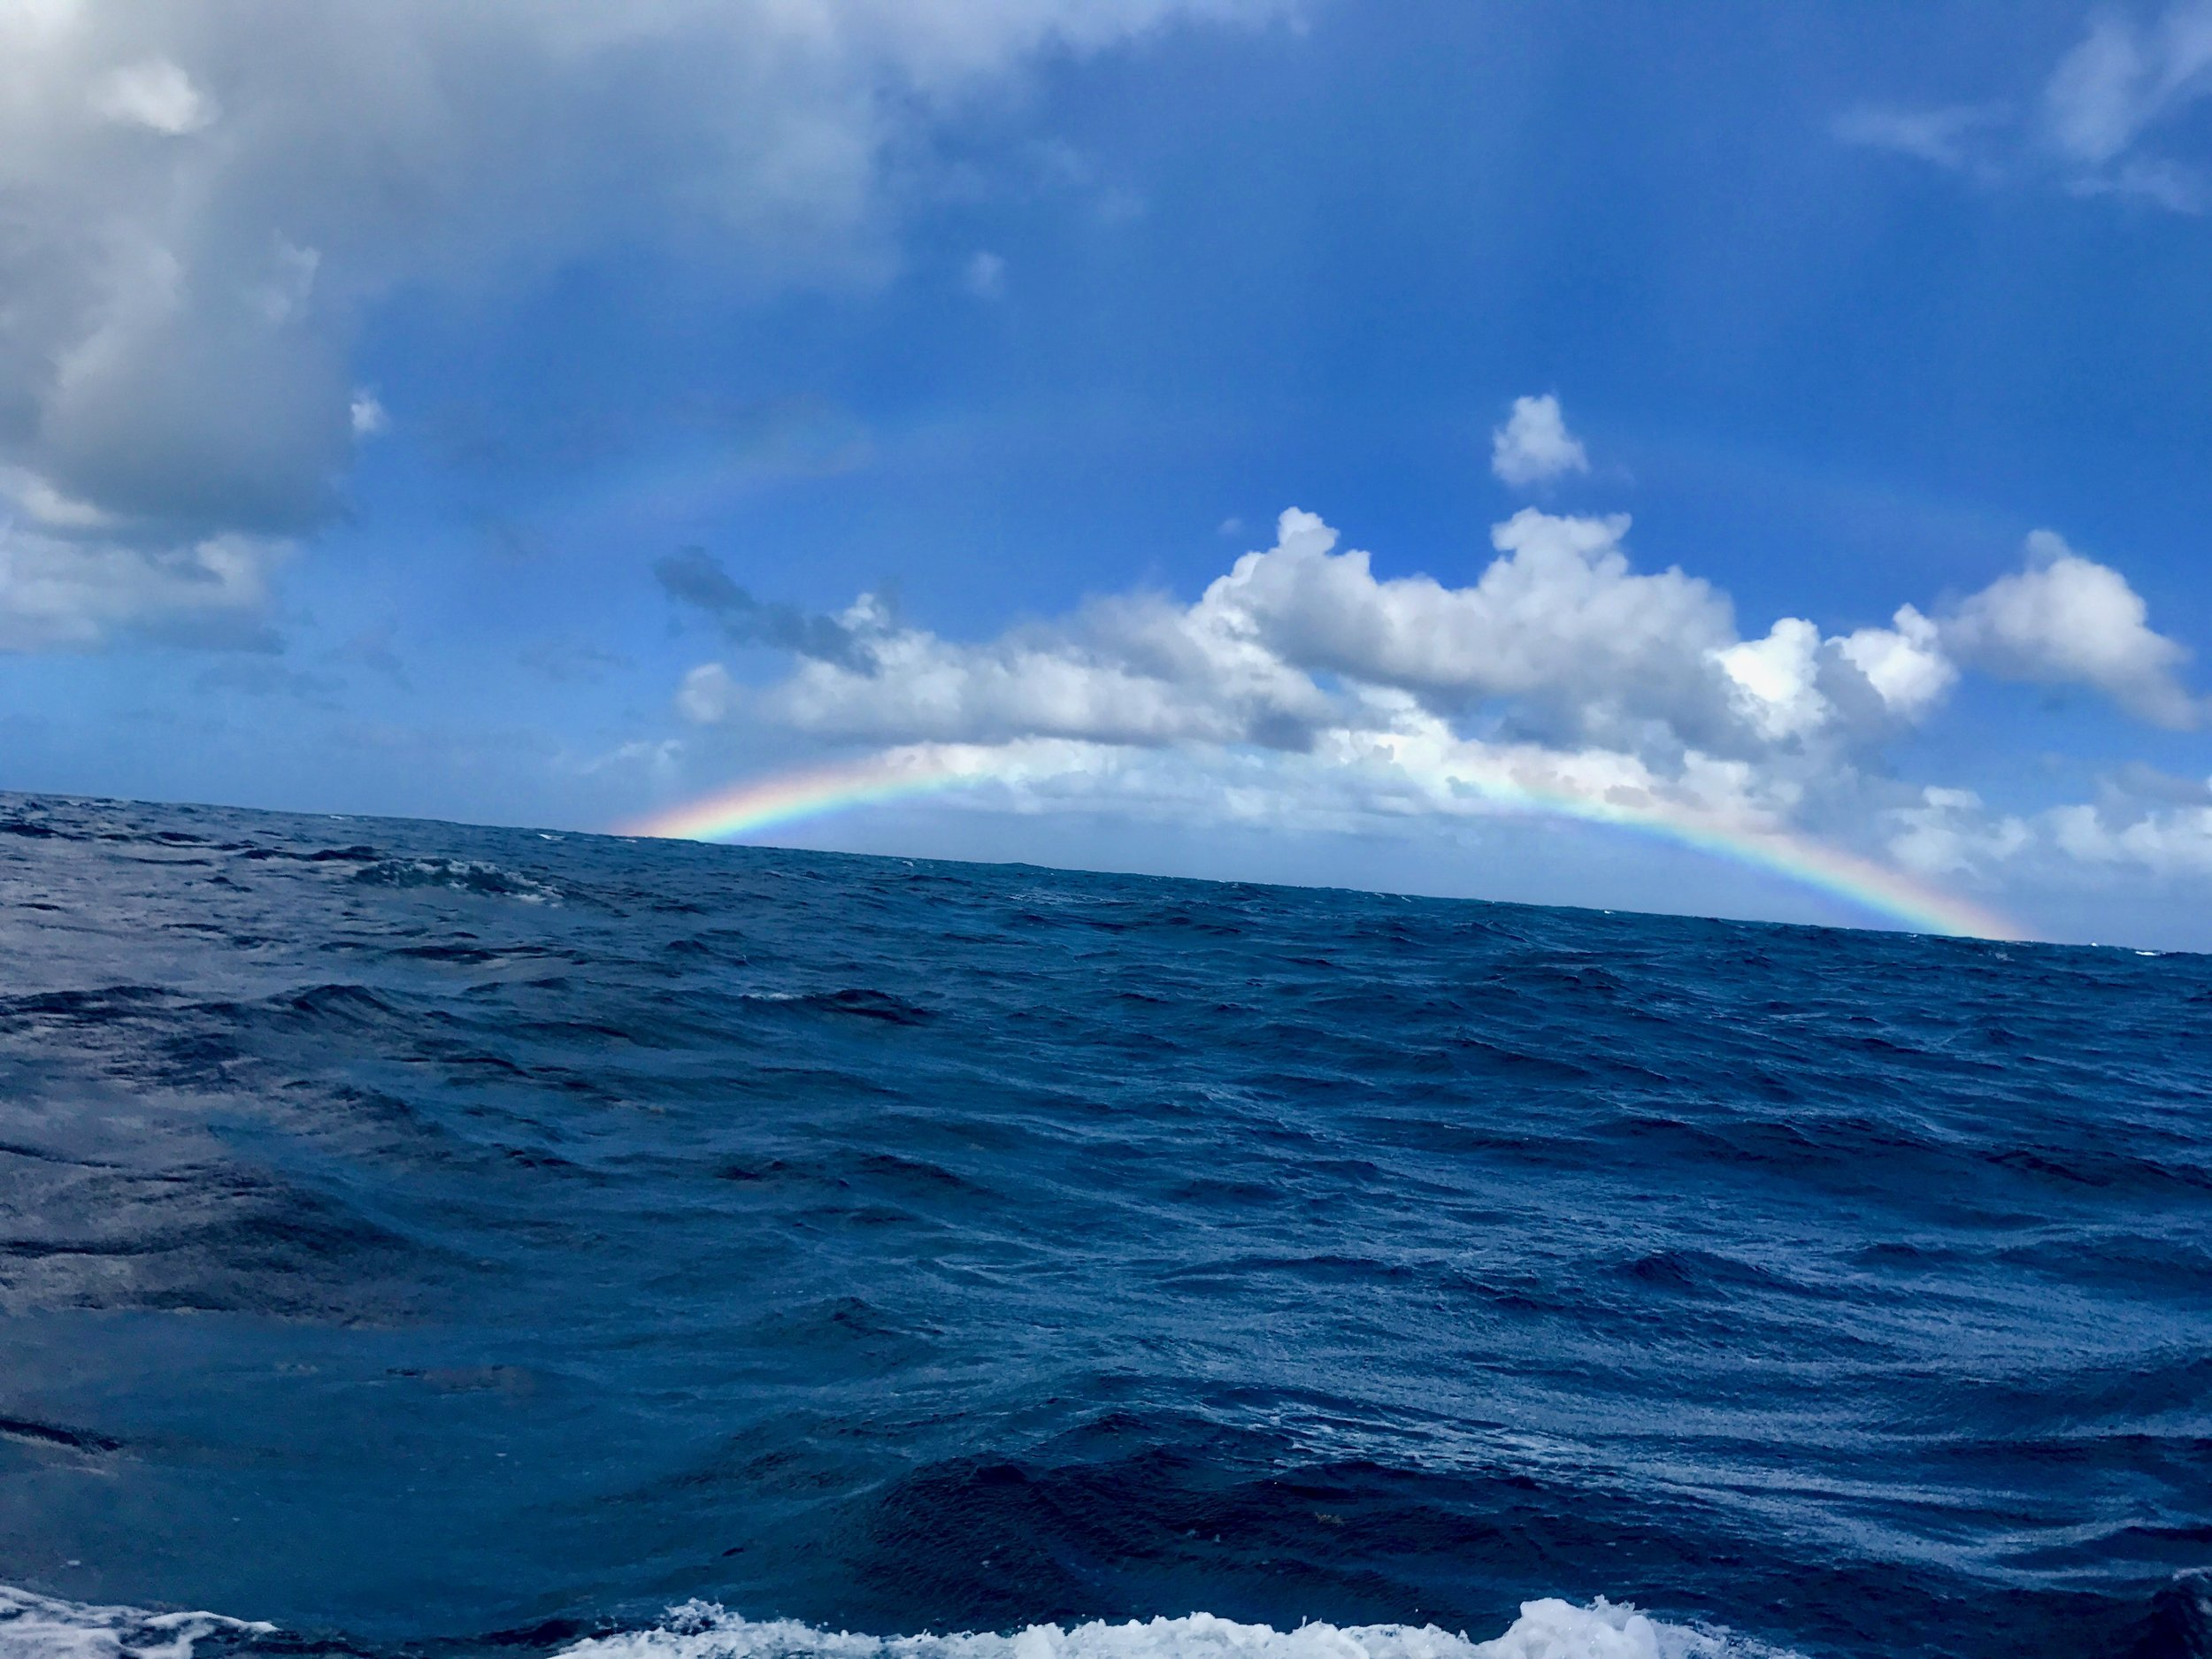 Rainbow, spotted while sailing